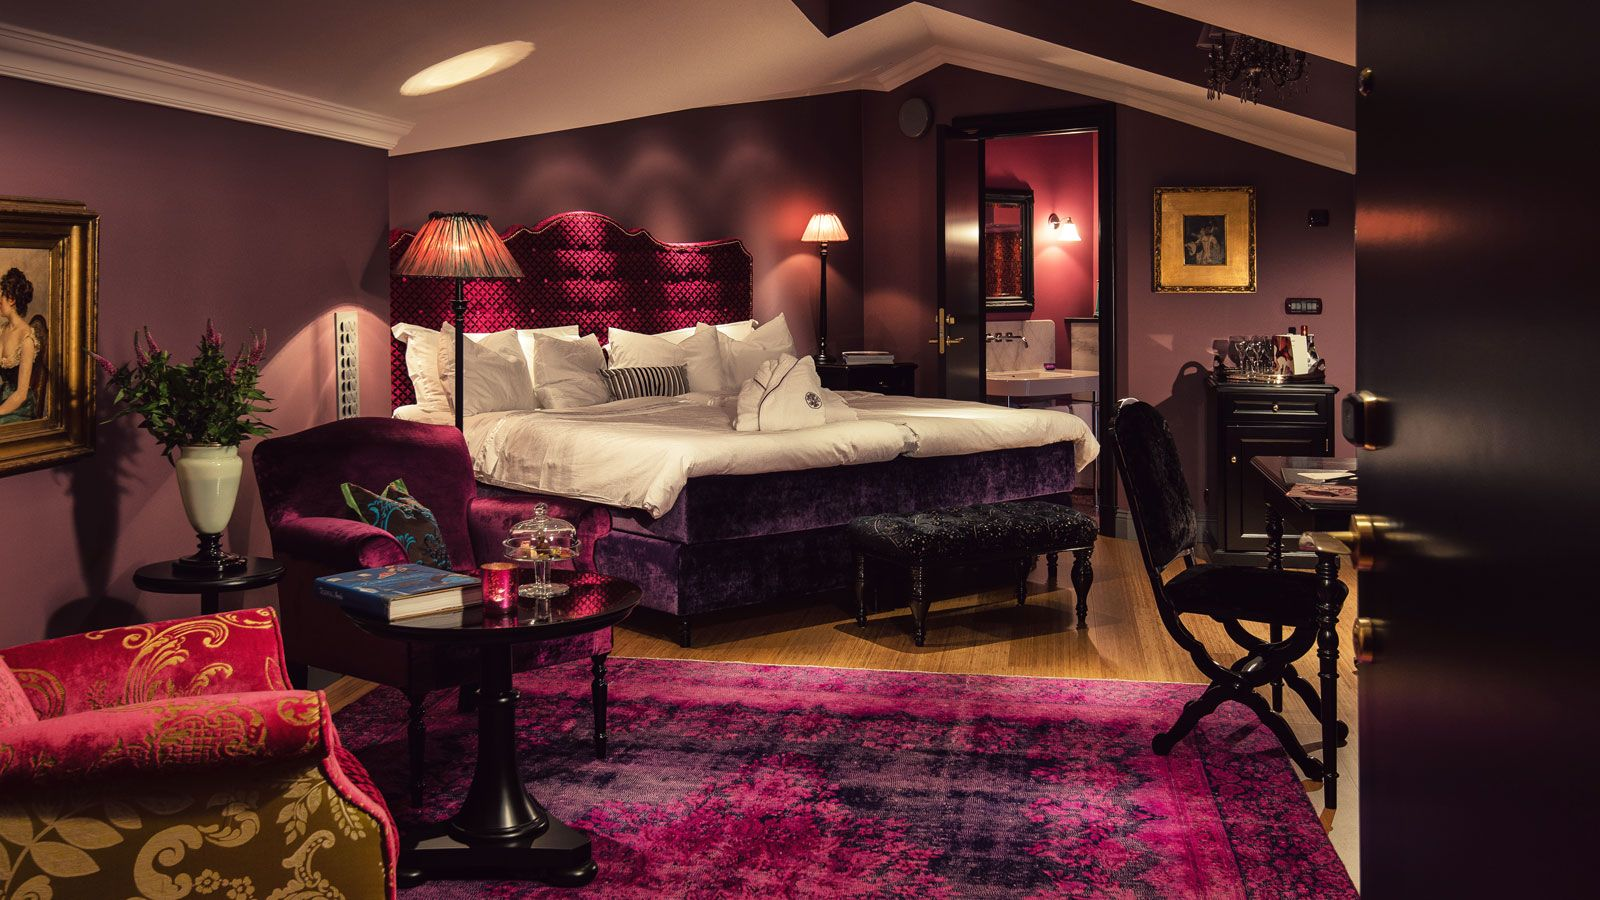 Dorsia hotel eccentric interior design eccentric for Romantic purple master bedroom ideas